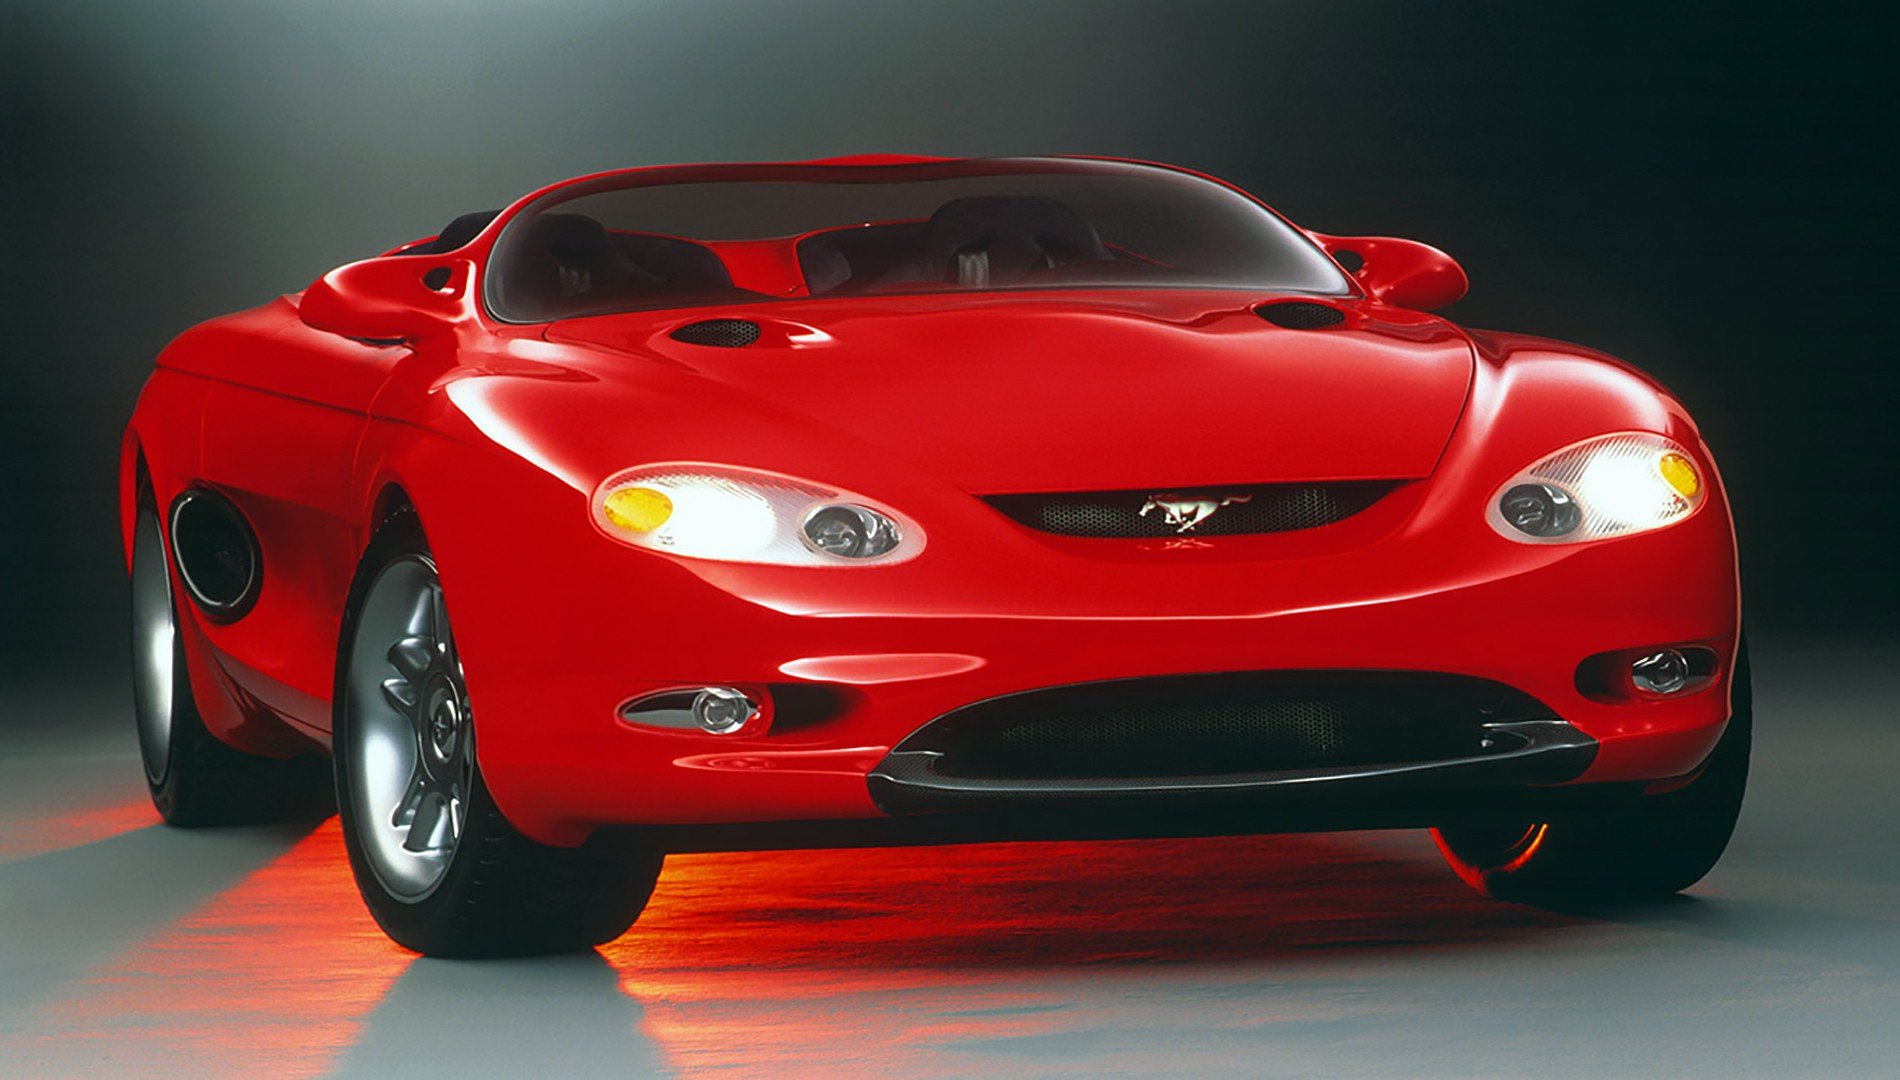 Car Ford Mustang Concept Cars Hd Wallpapers Desktop